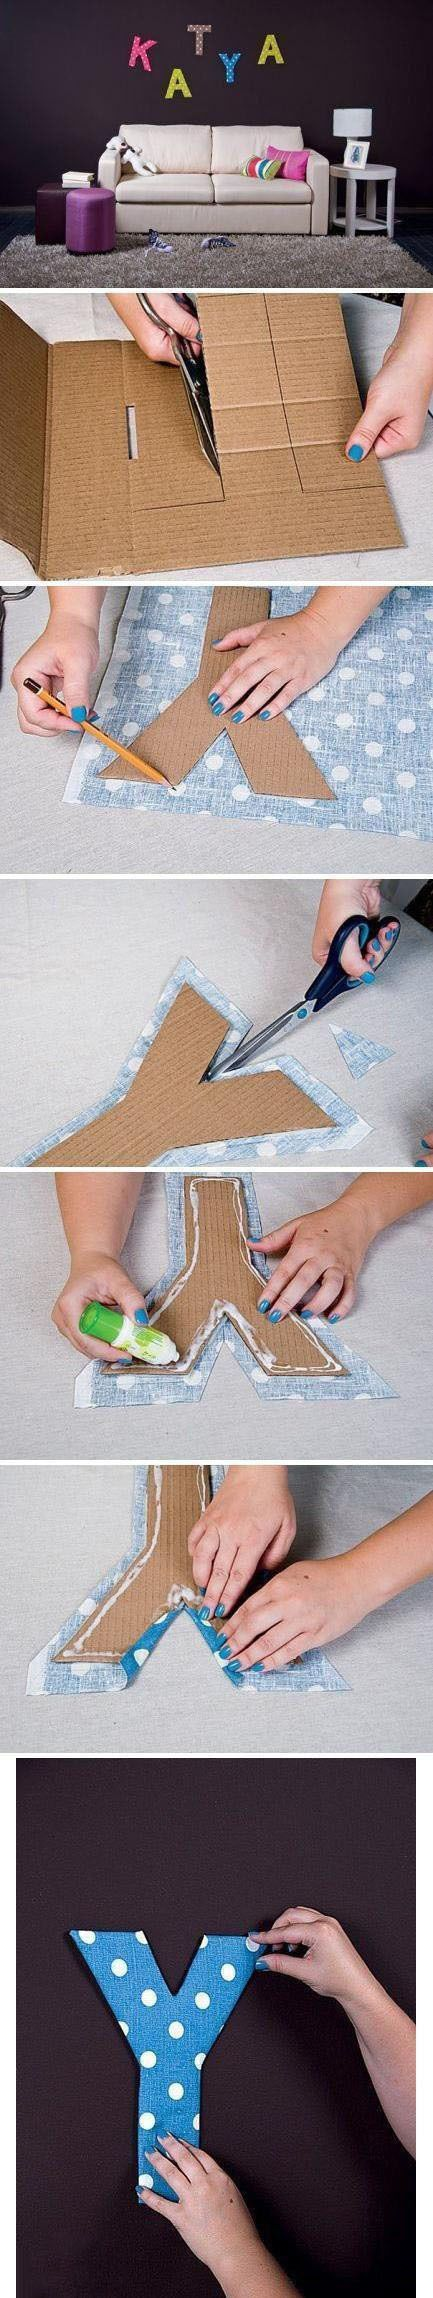 Diy Projects: Fabric and Cardboard Wall Letters DIY - where was this when I was fixing up the baby's nursery...